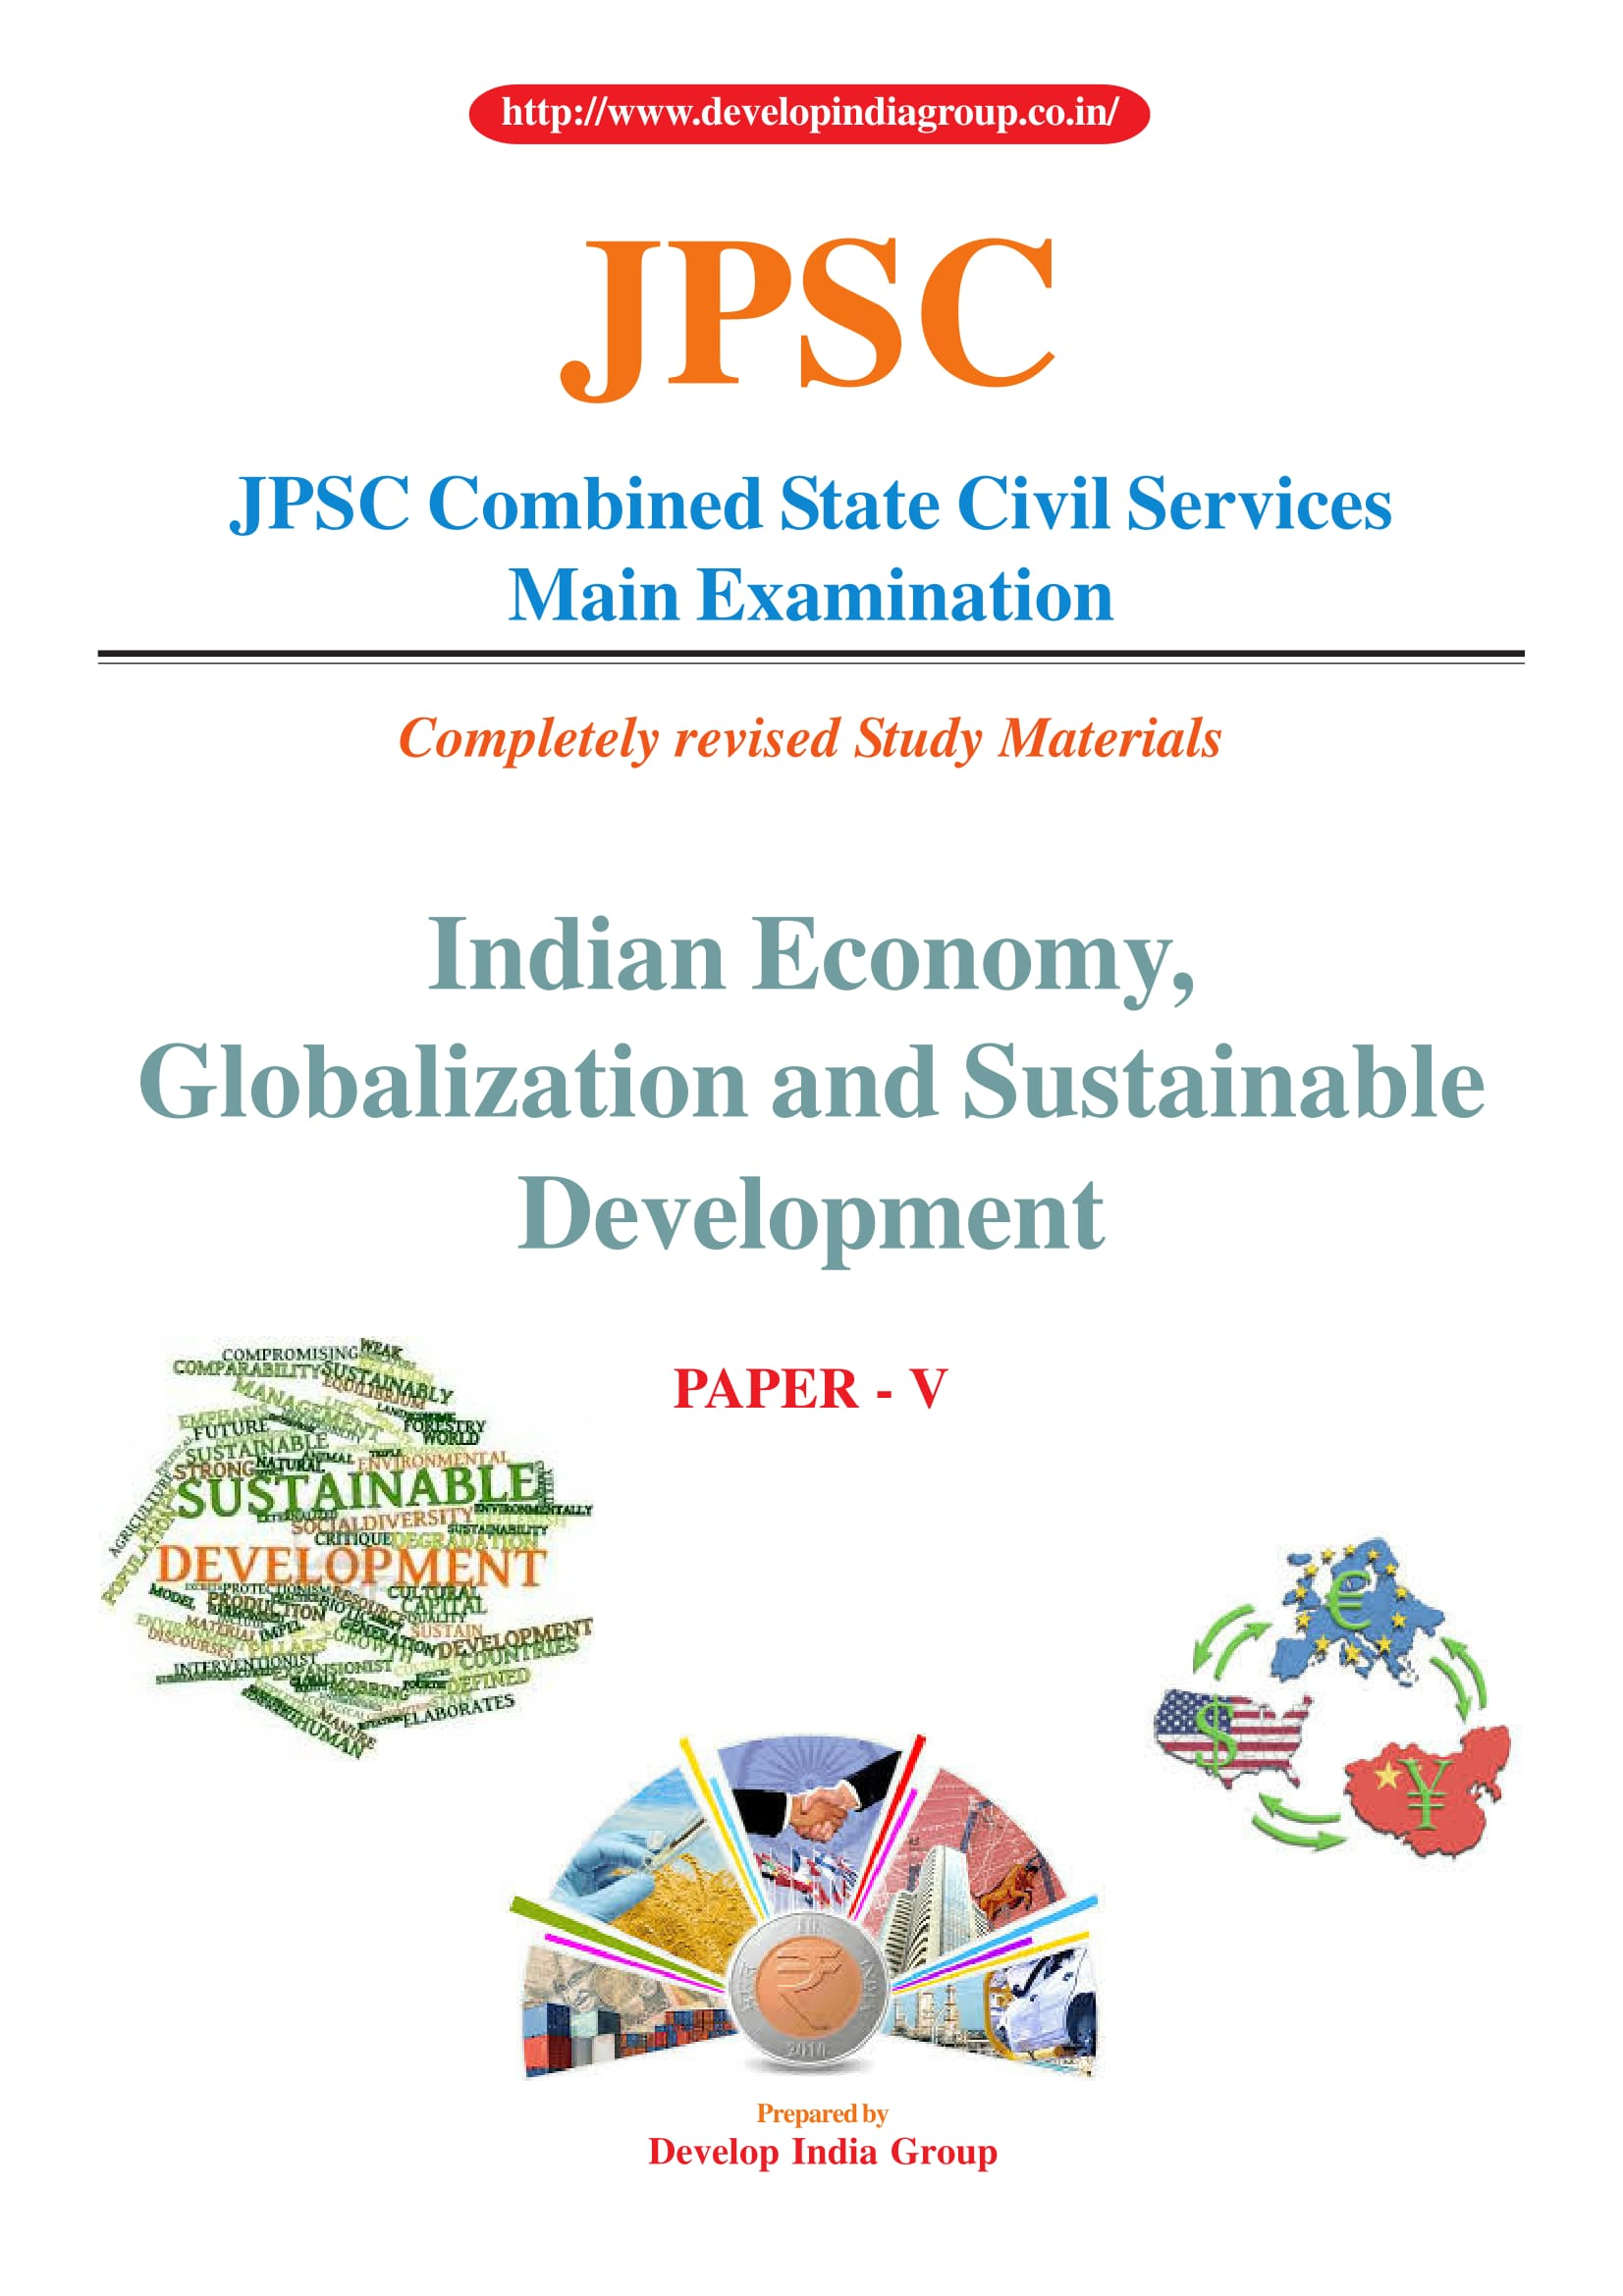 JPSC_Main_(revised)_Paper_5_(English)